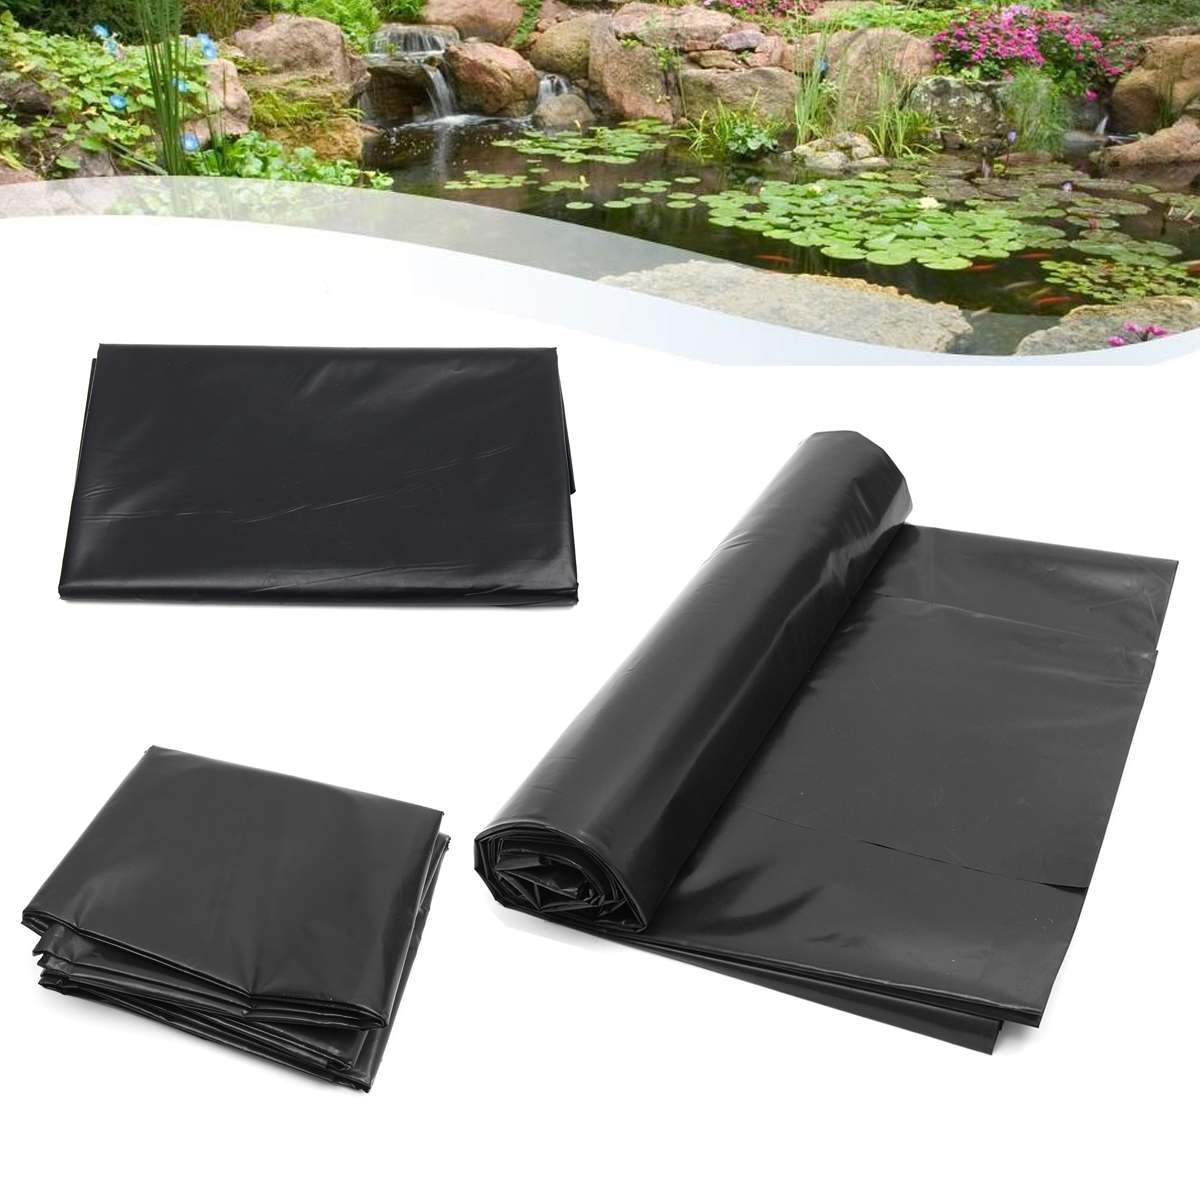 5'x10' HDPE Pond Liner Heavy   Landscaping Garden Pool Reinforced Waterproof Pool Liners Cloth Fish Breed Pond Liner Membrane